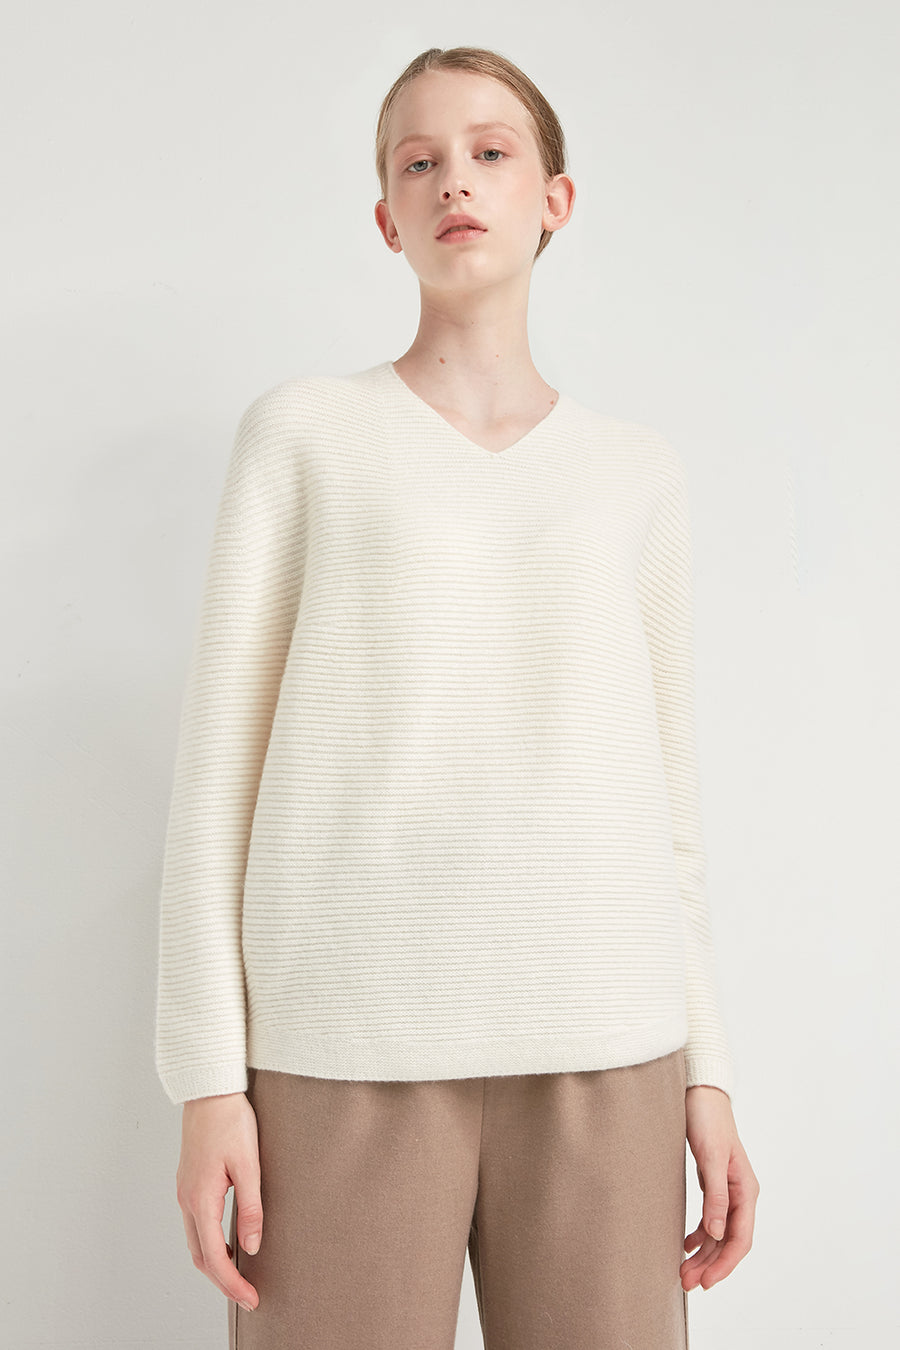 Horizontal ribbed v-neck pullover - Zelle Studio